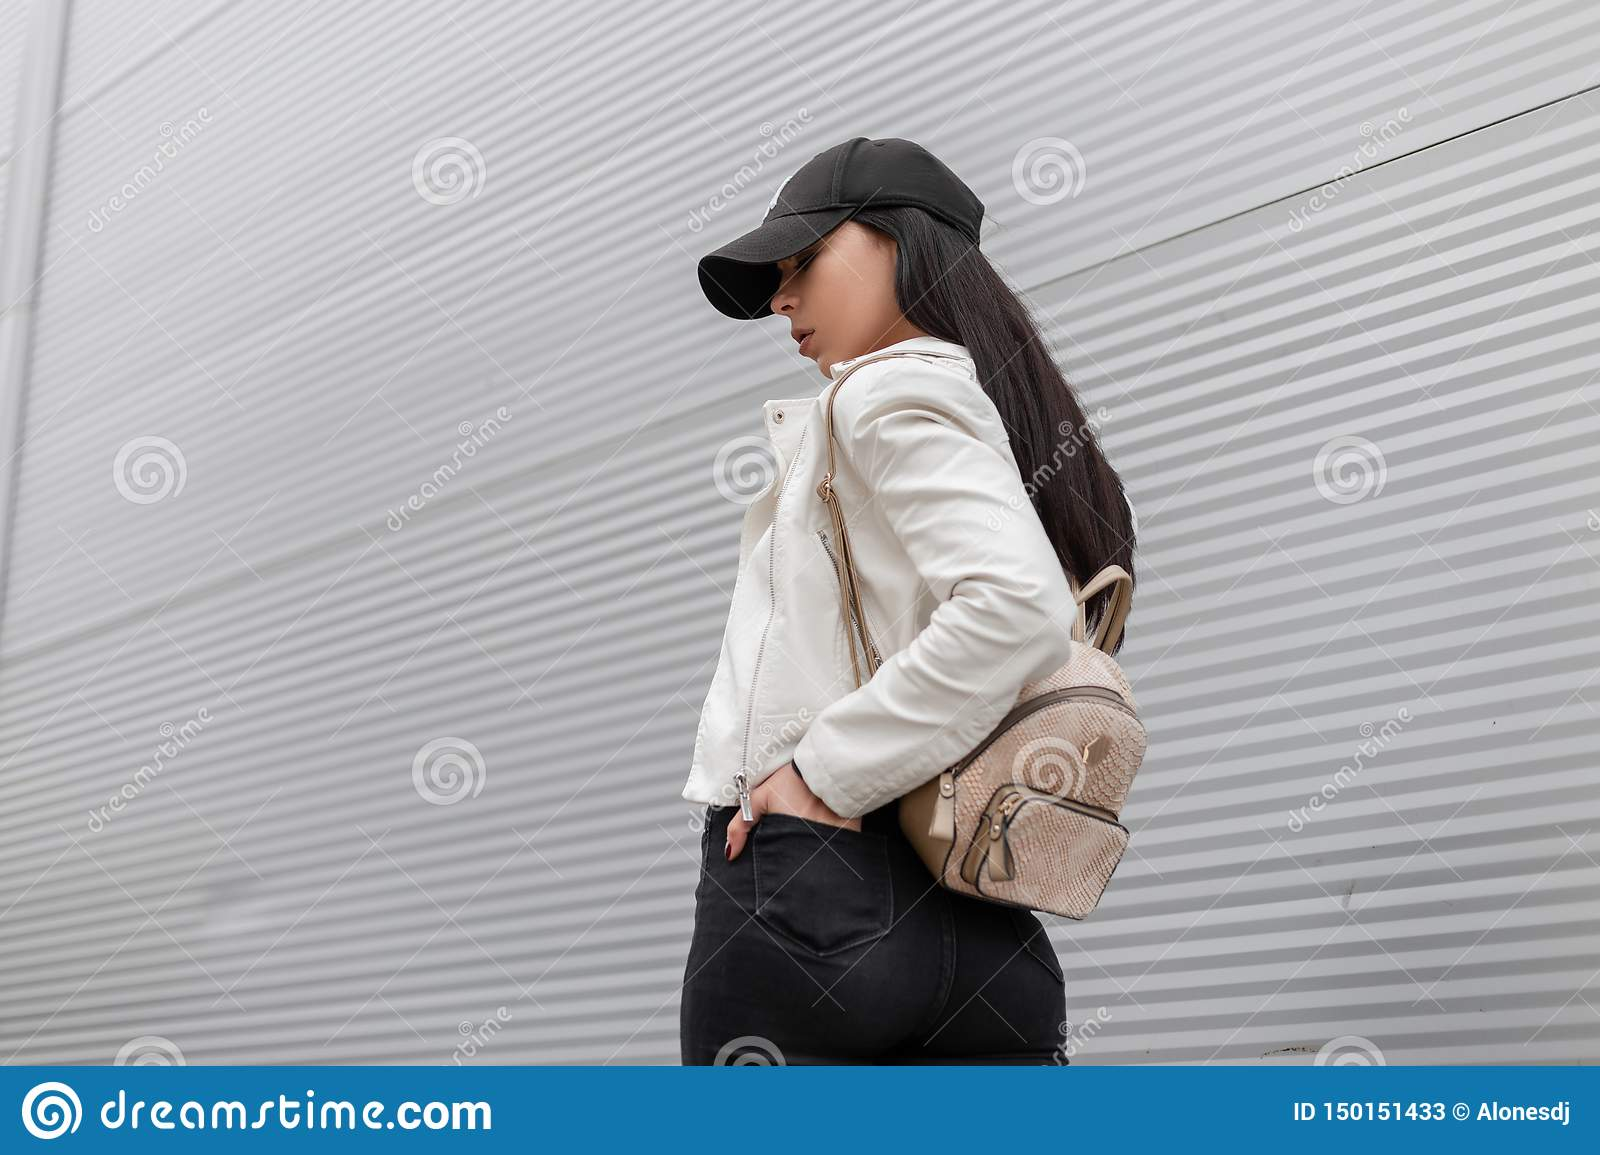 American young woman in a stylish cap with a trendy gold backpack in a vintage white leather jacket traveling along the street